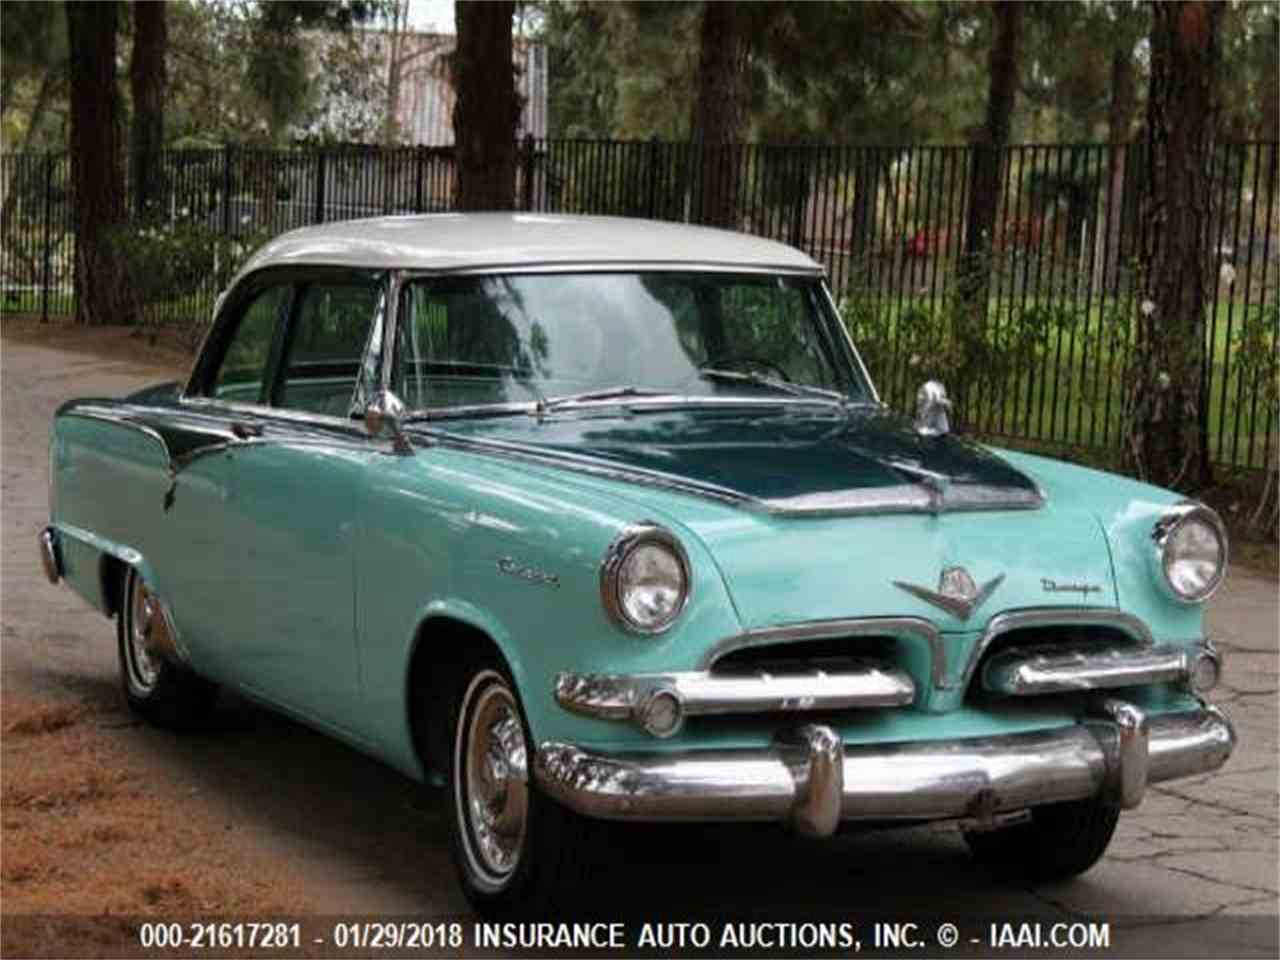 1955 Dodge Parts Car for Sale | ClassicCars.com | CC-1079187